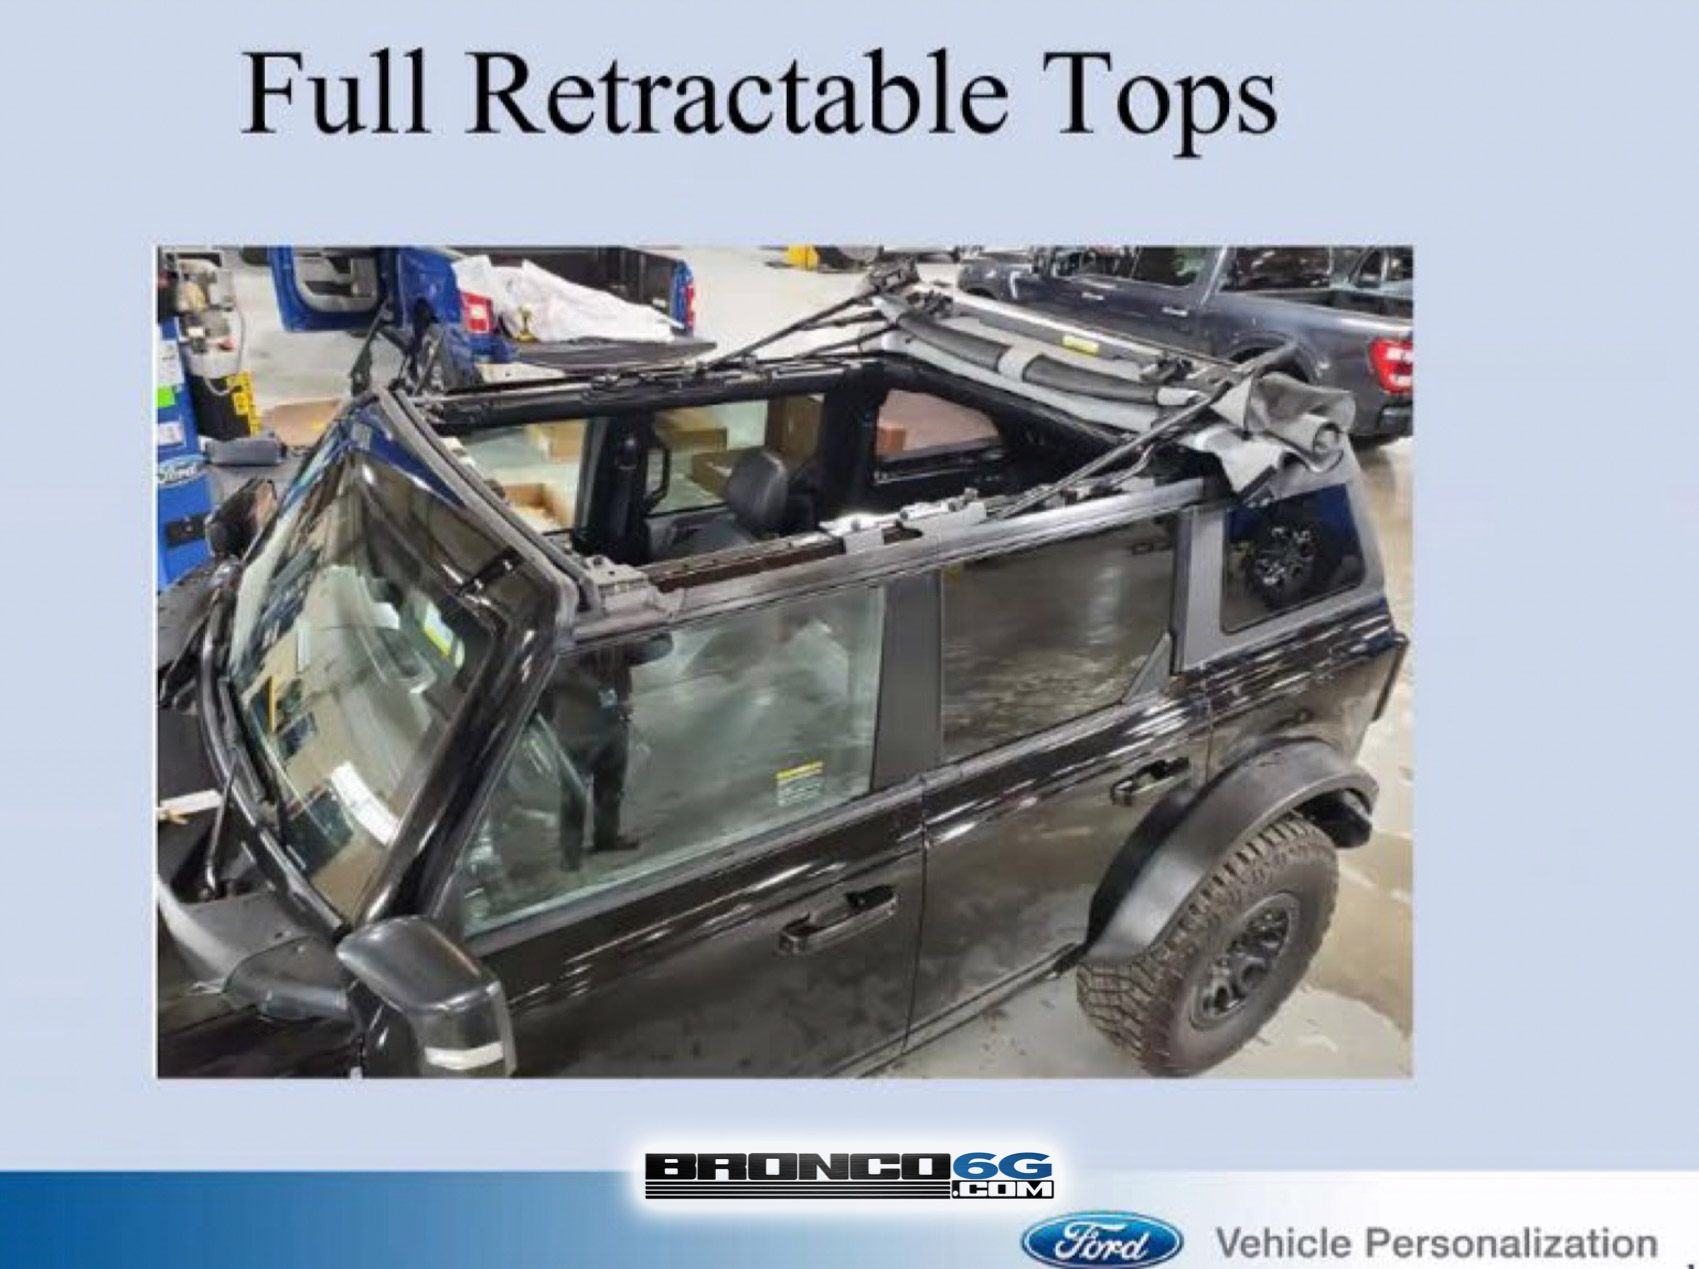 2021 Bronco Full Retractable Tops Fastback Soft Top 4 Door - Ford Performance OEM factory acce...jpg